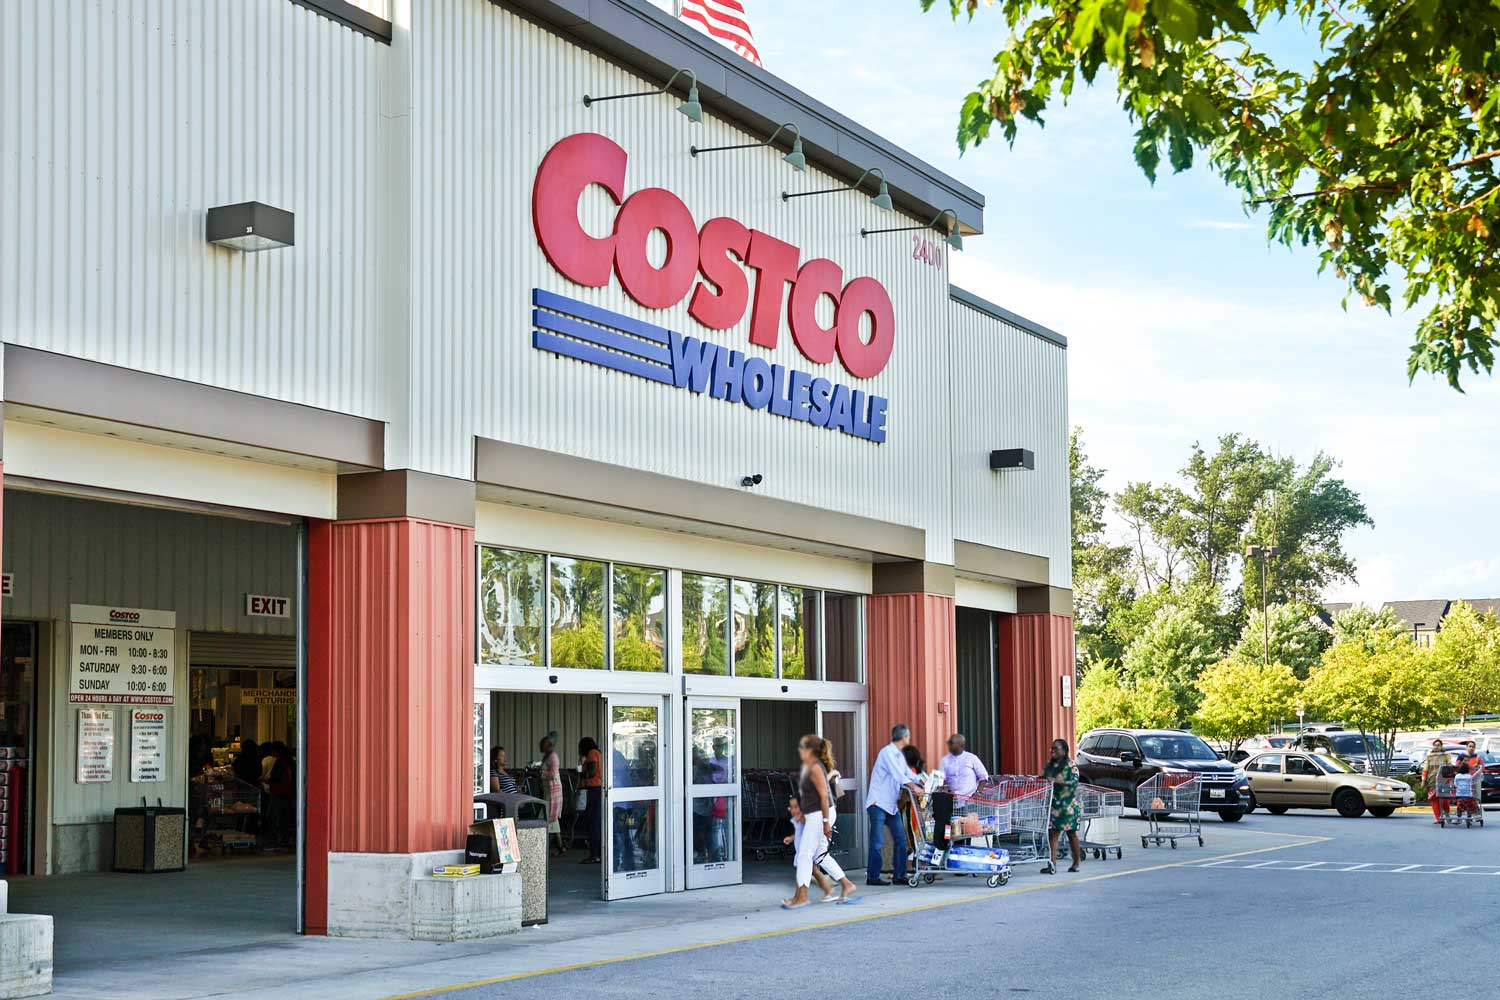 Costco is 10 minutes from Carrollon Manor Apartments in New Carrollton, MD